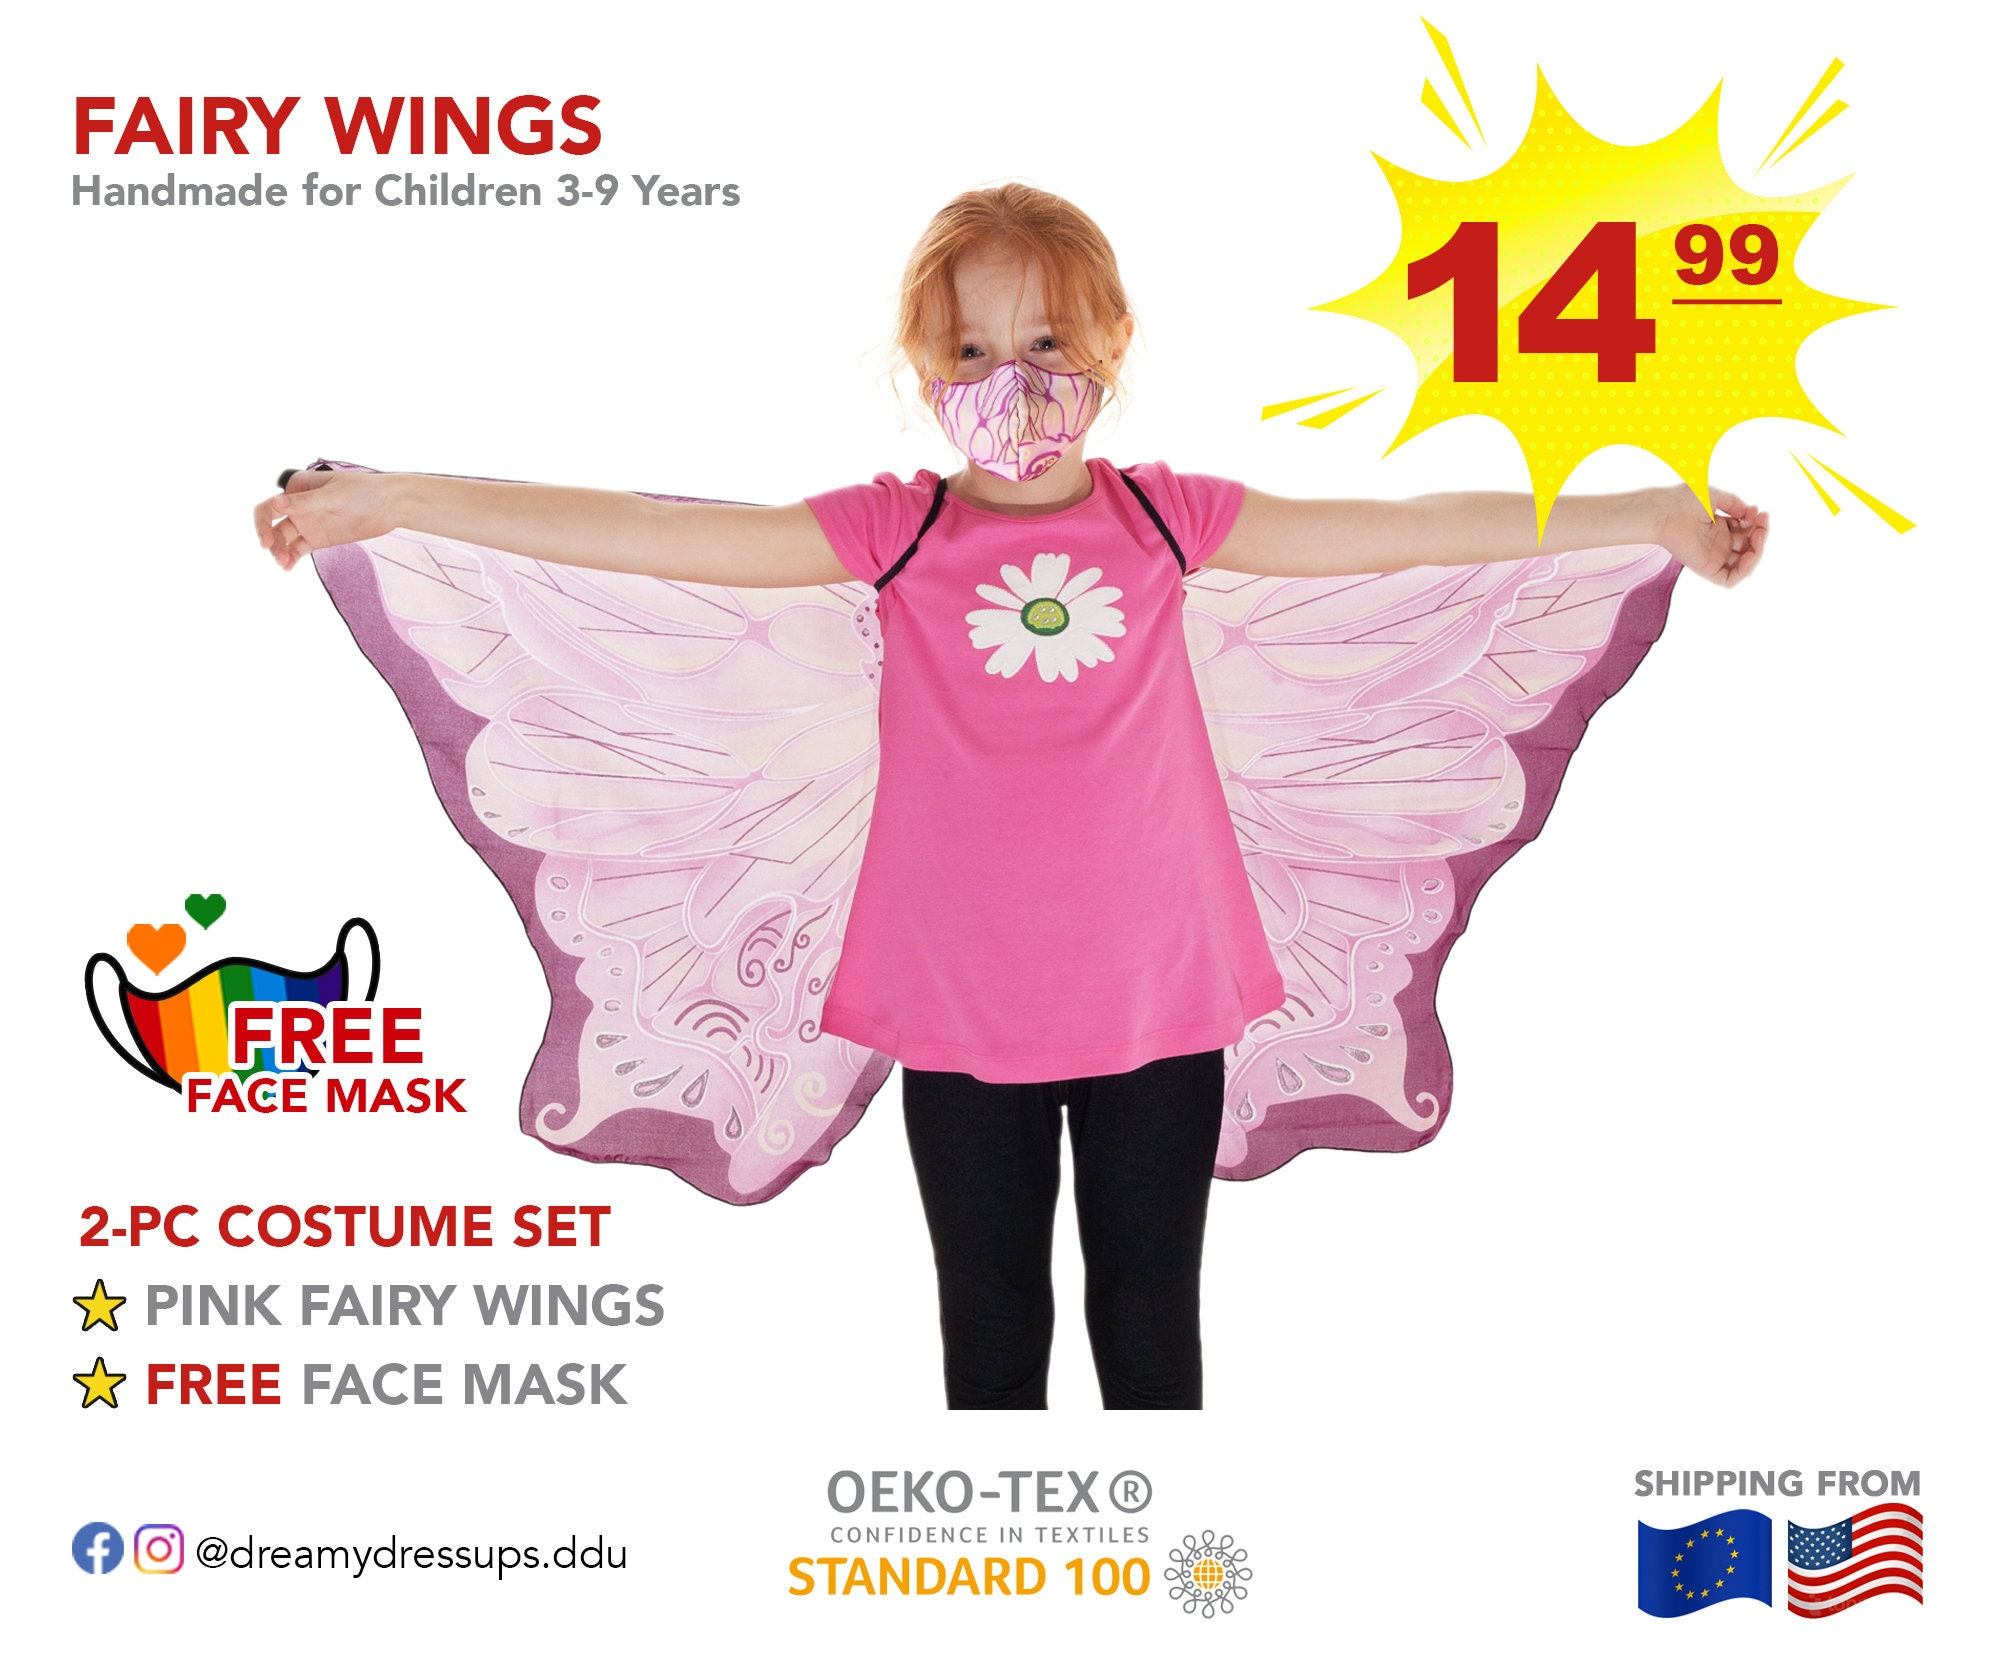 CLOSURE SALE Wings Free Face Mask Daycare or School in Fashion Pink Fairy Dress Up Outfit for Kids 3 to 9 Years to Buzz around Home